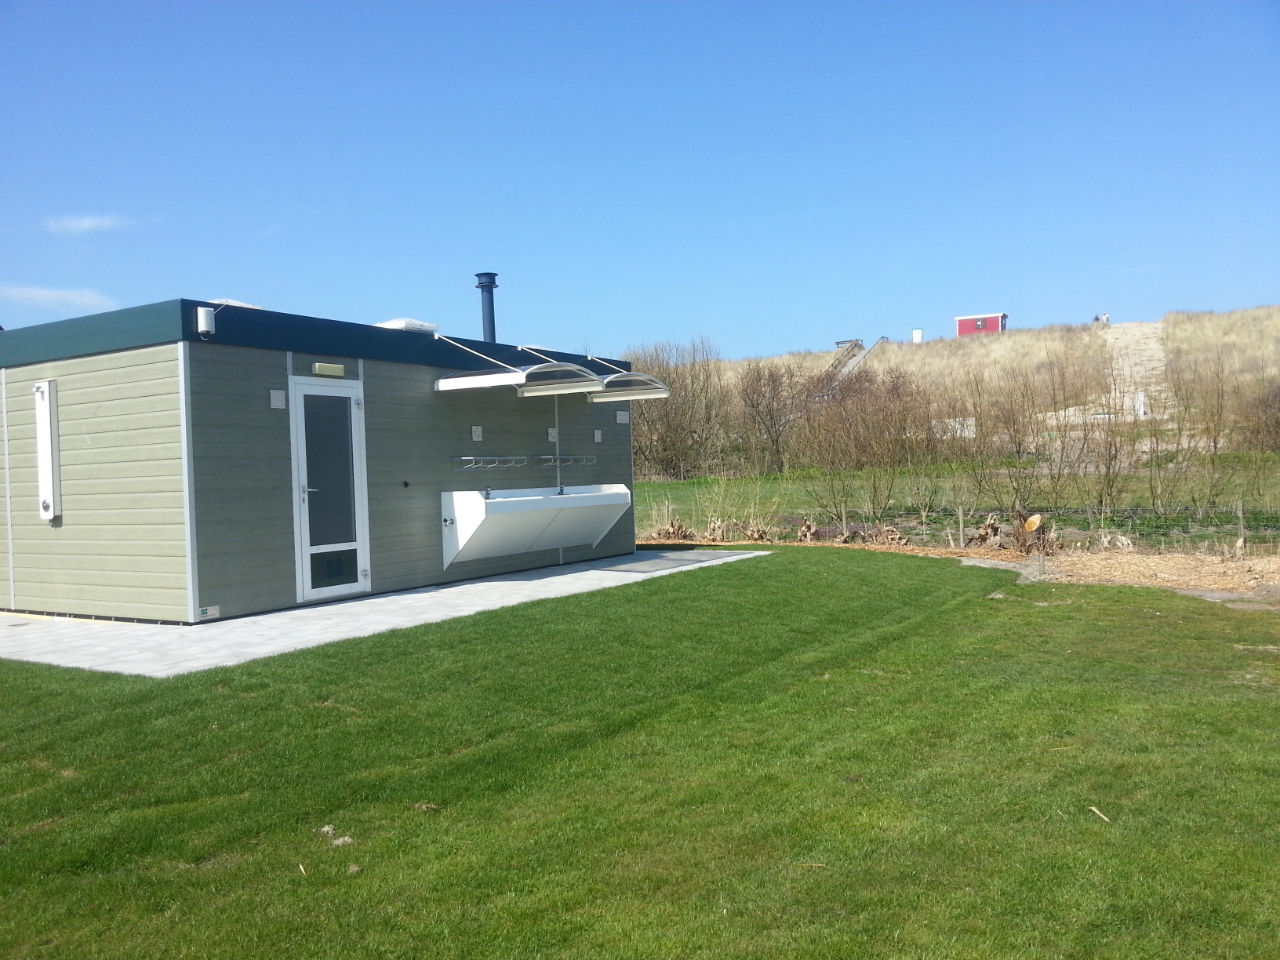 Camping in Domburg - sanitairunit op minicamping Noordduin